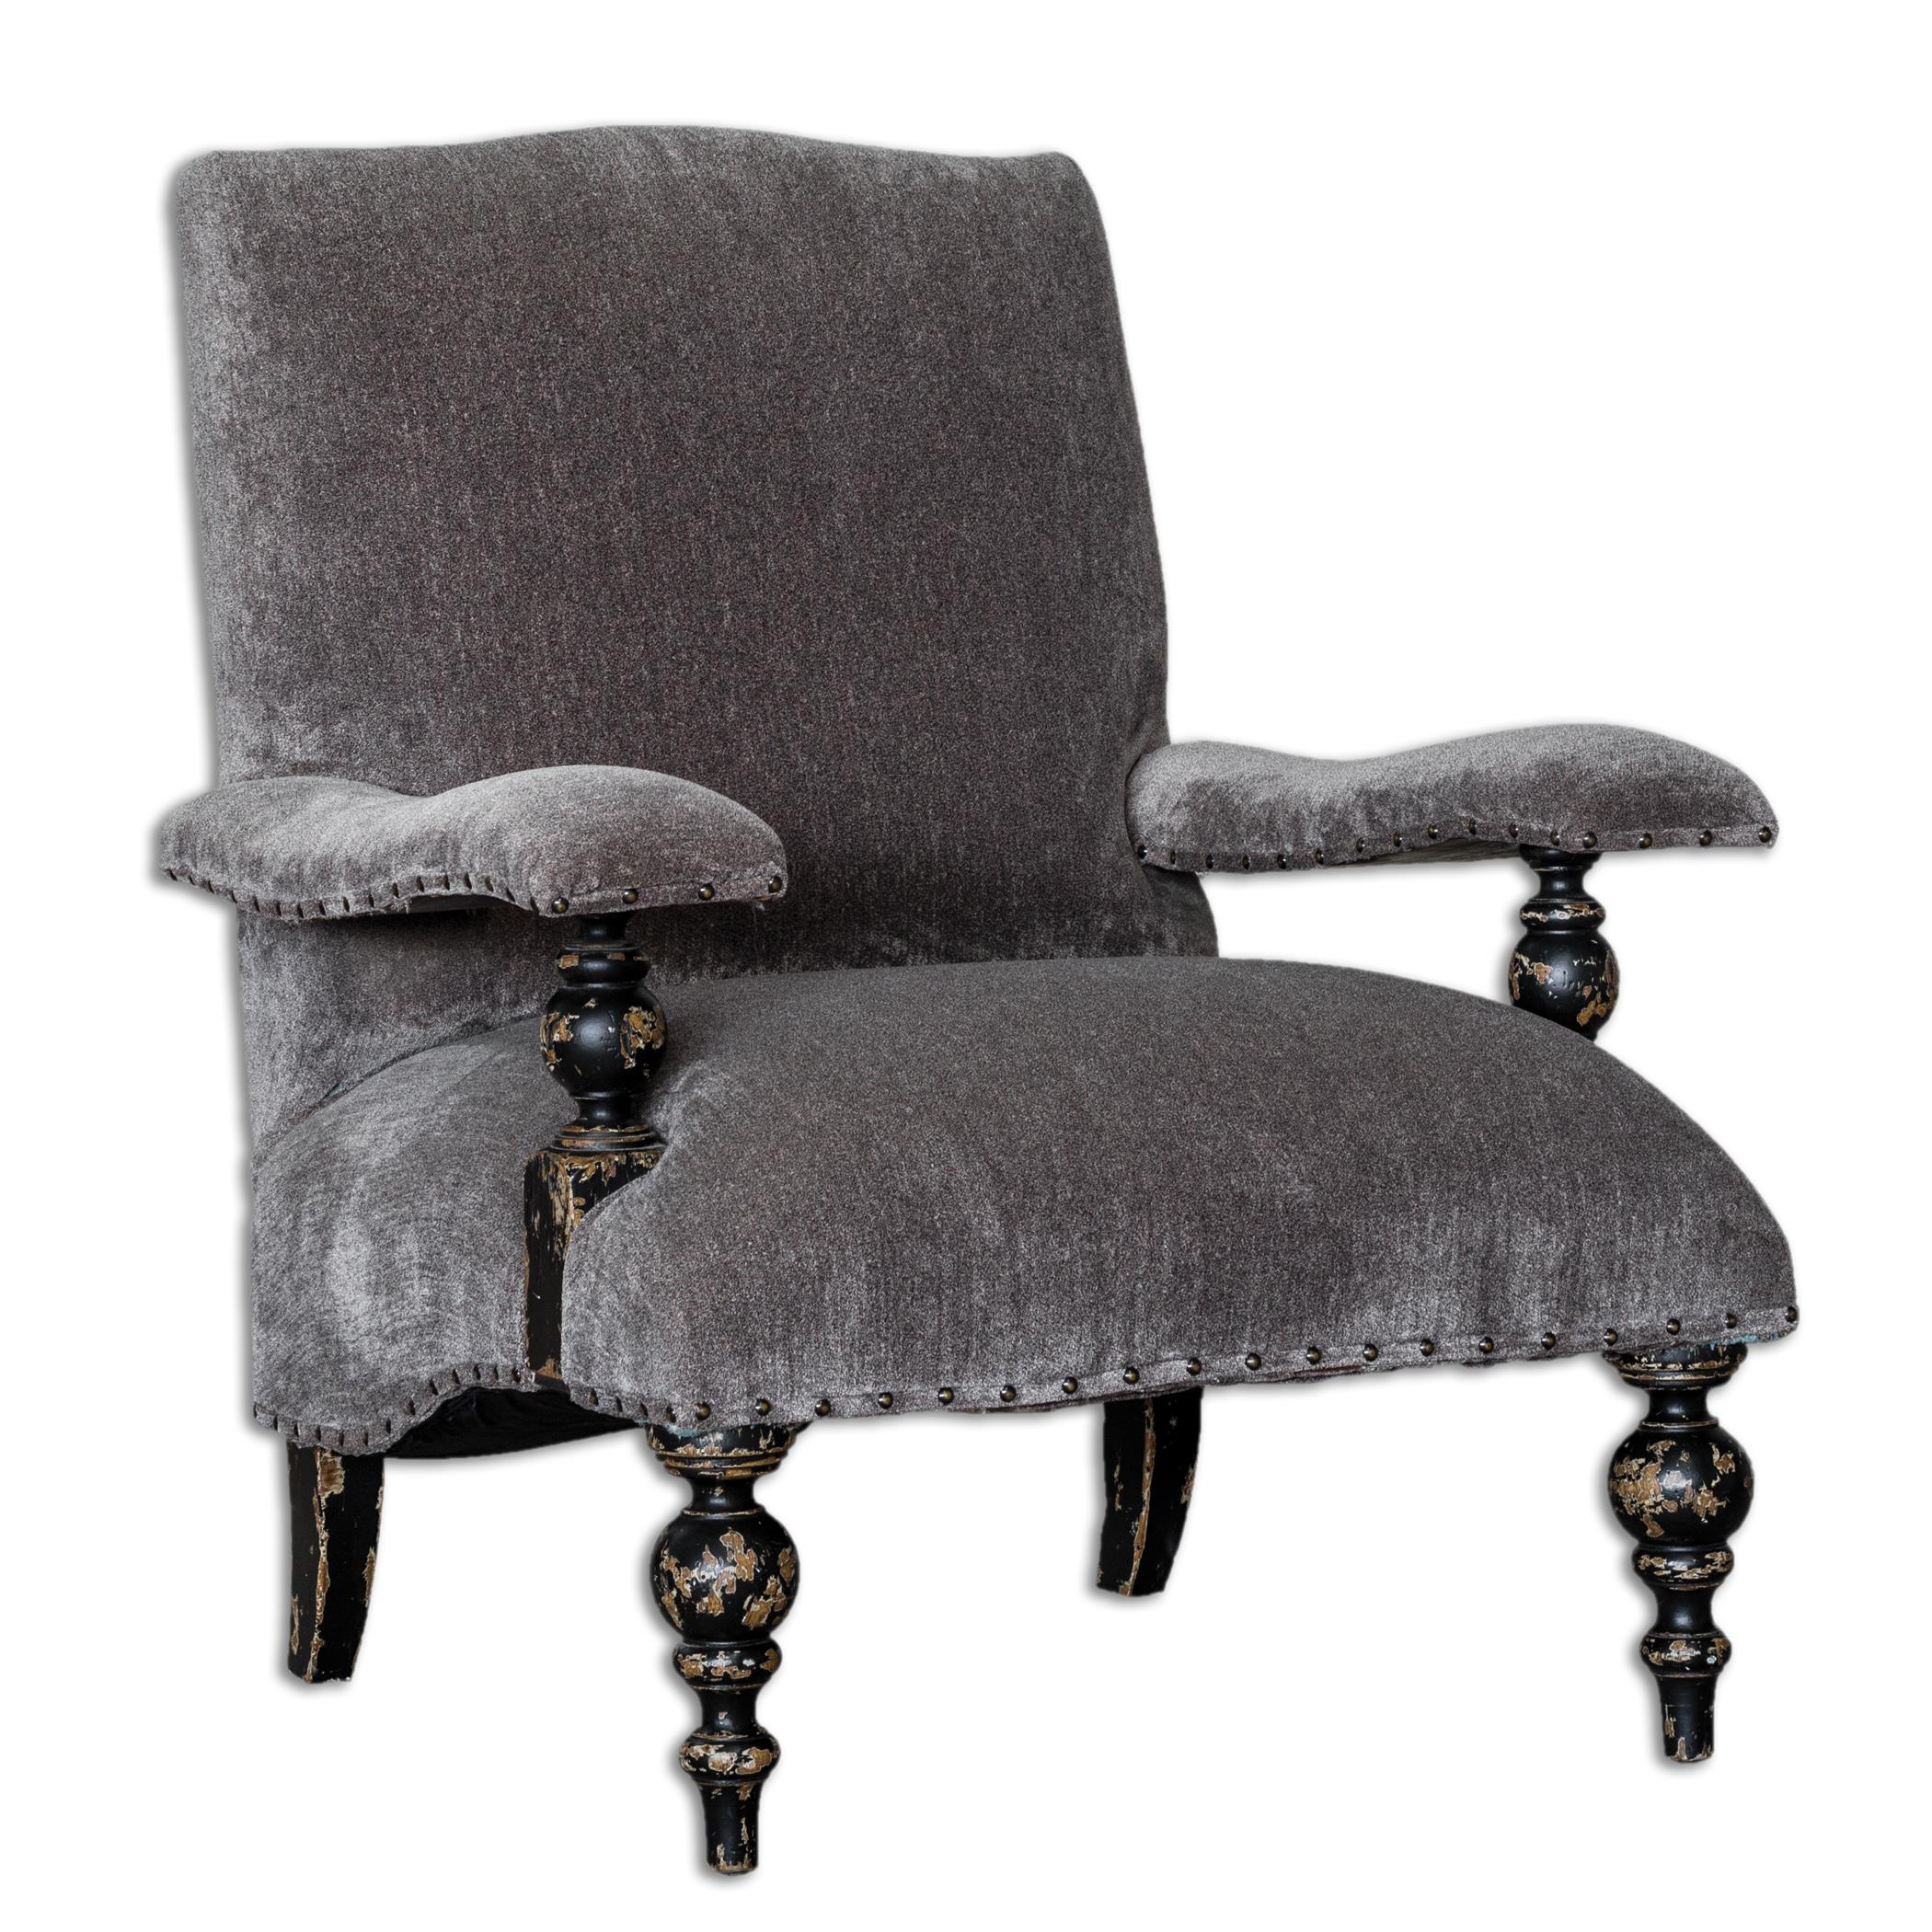 Uttermost Accent Furniture Eavan Gray Chenille Armchair - Item Number: 23640